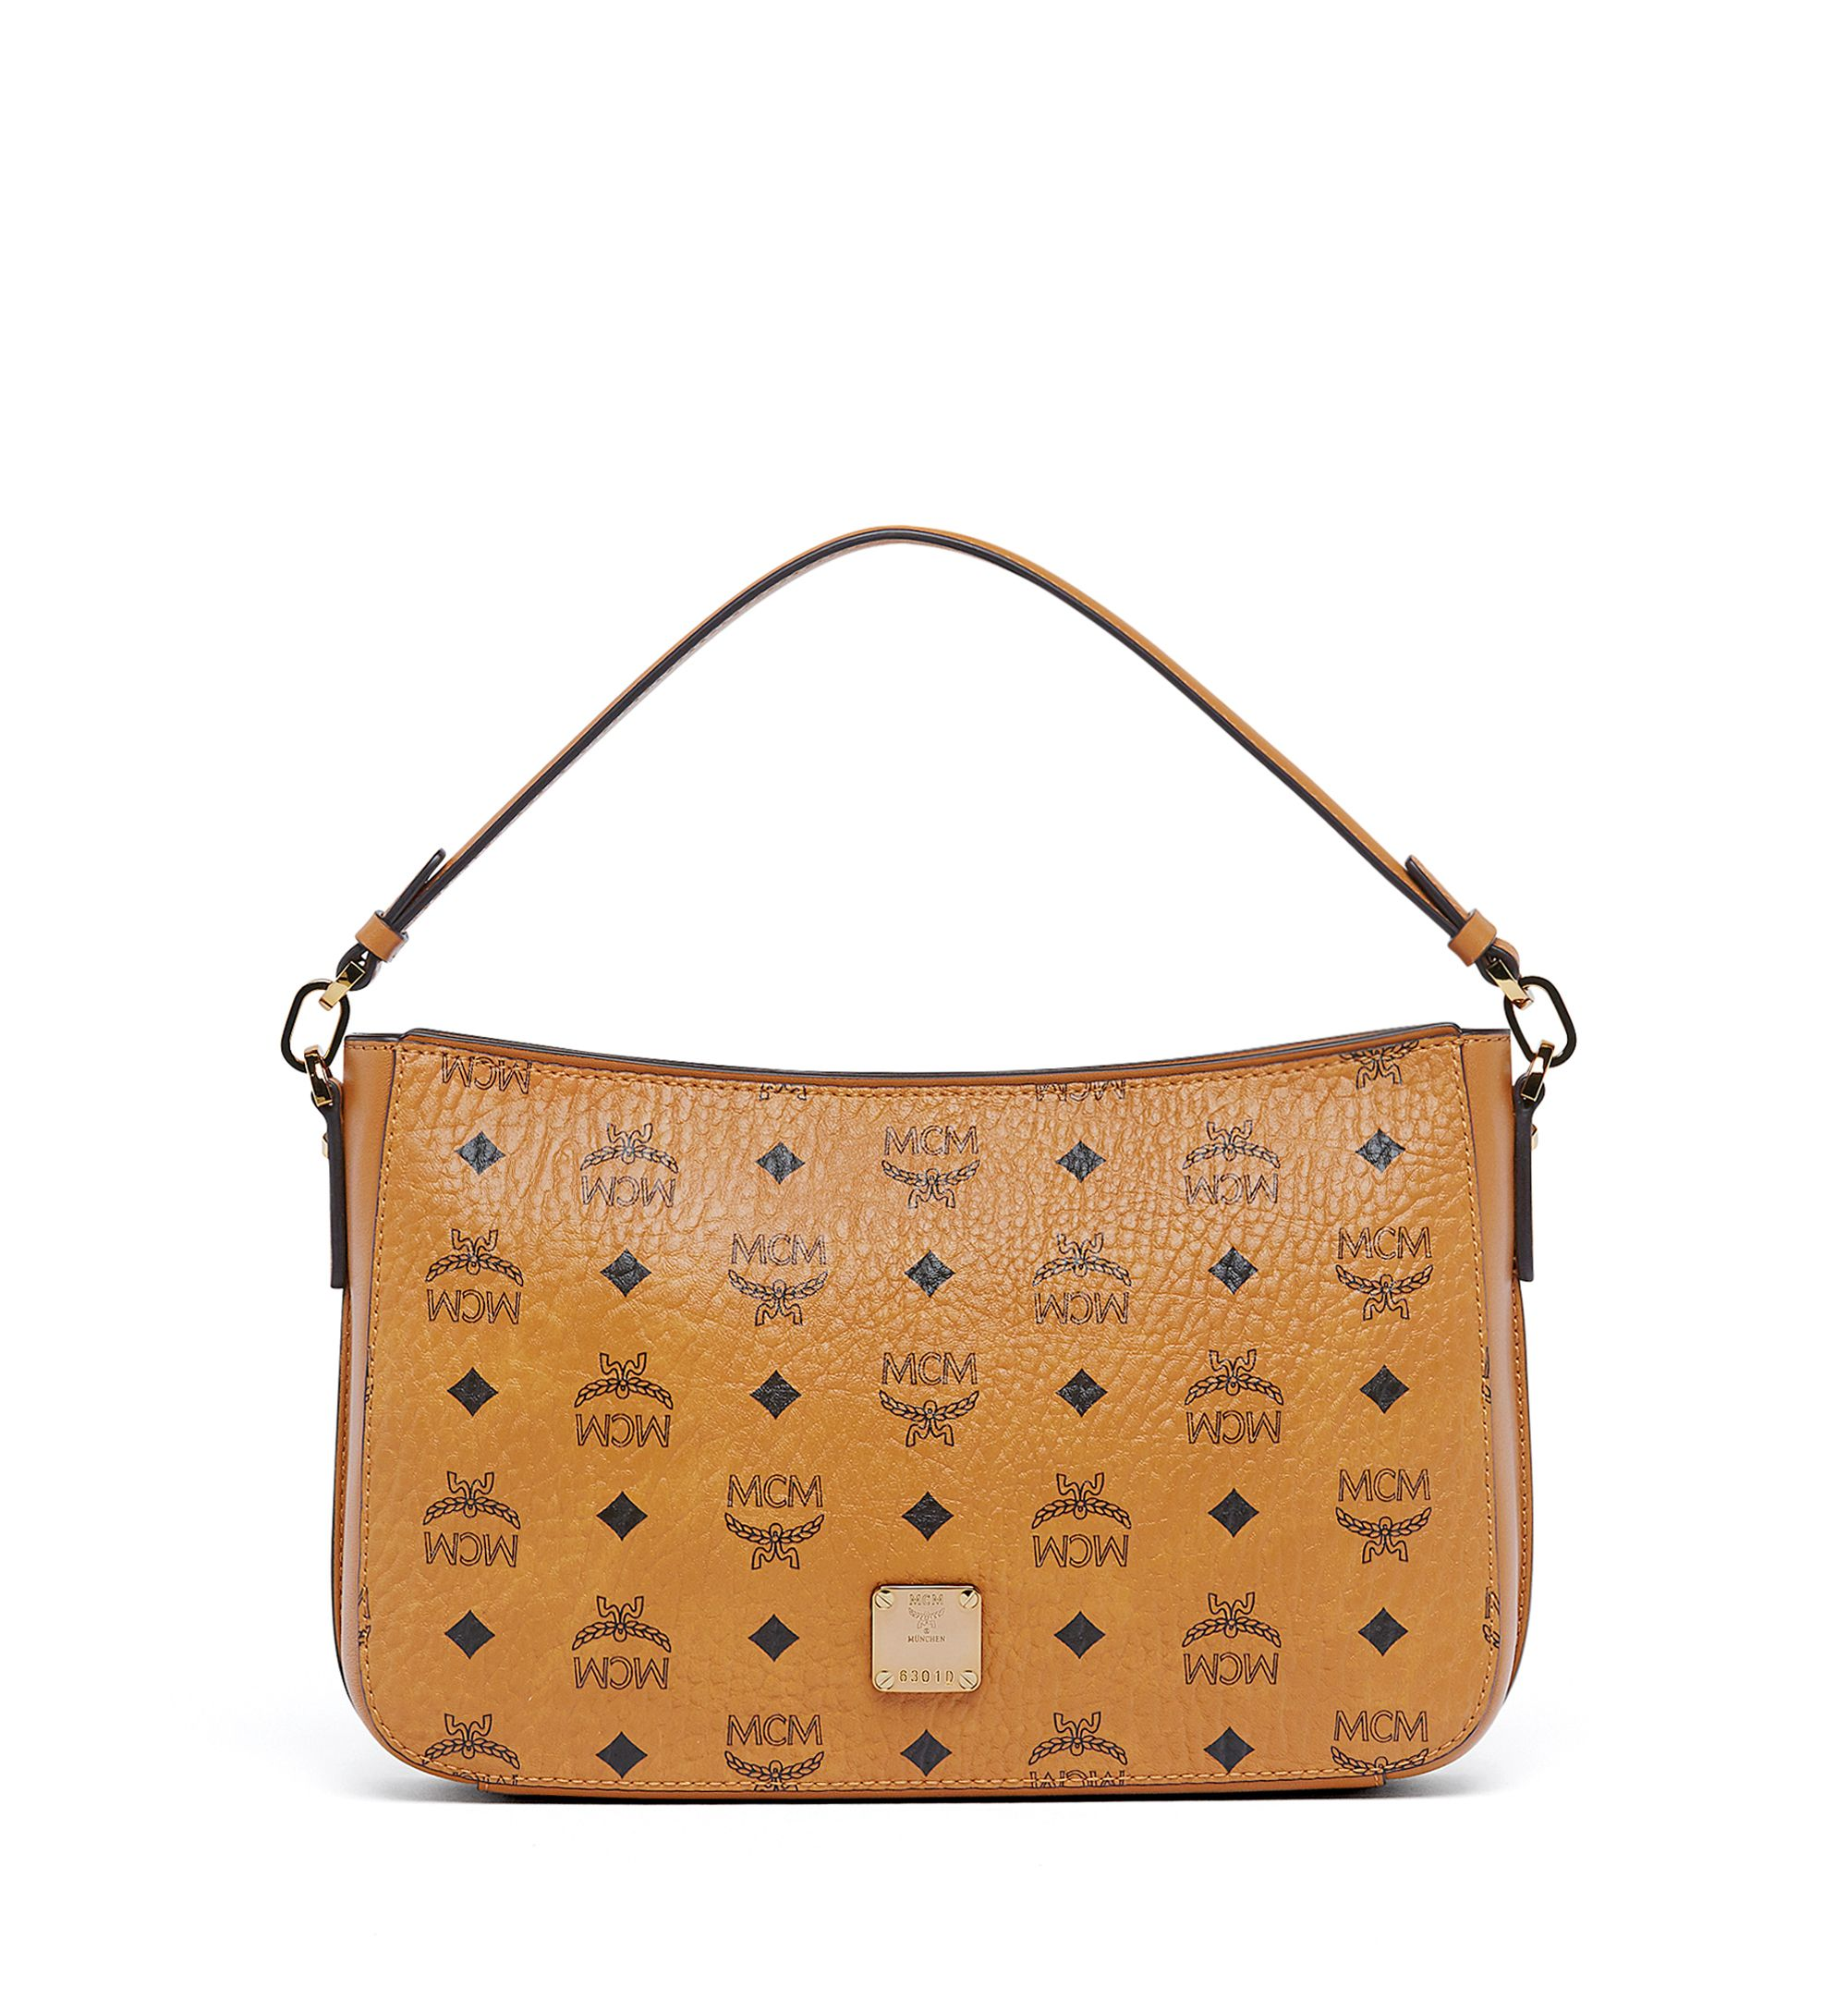 2073e13590c477 MCM ESSENTIAL SHOULDER BAG IN VISETOS ORIGINAL. #mcm #bags #shoulder bags  #hand bags #canvas #leather #